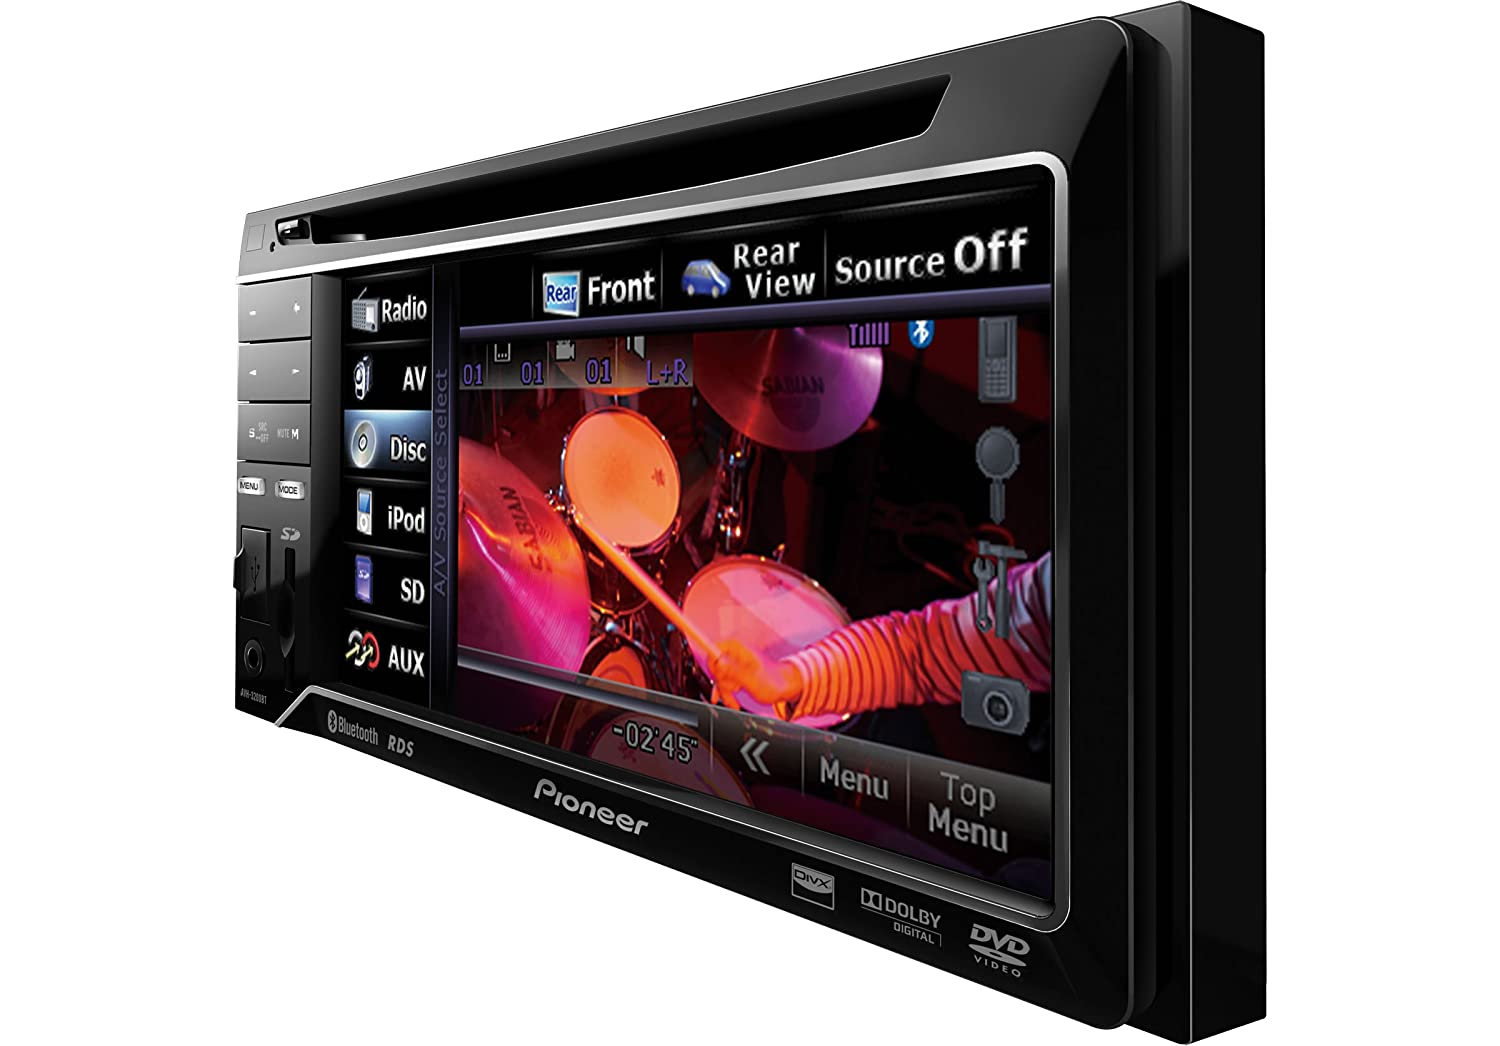 pioneer 4200. pioneer avh-3200bt double din bluetooth dvd player with 5.8 inch touchscreen: amazon.co.uk: electronics 4200